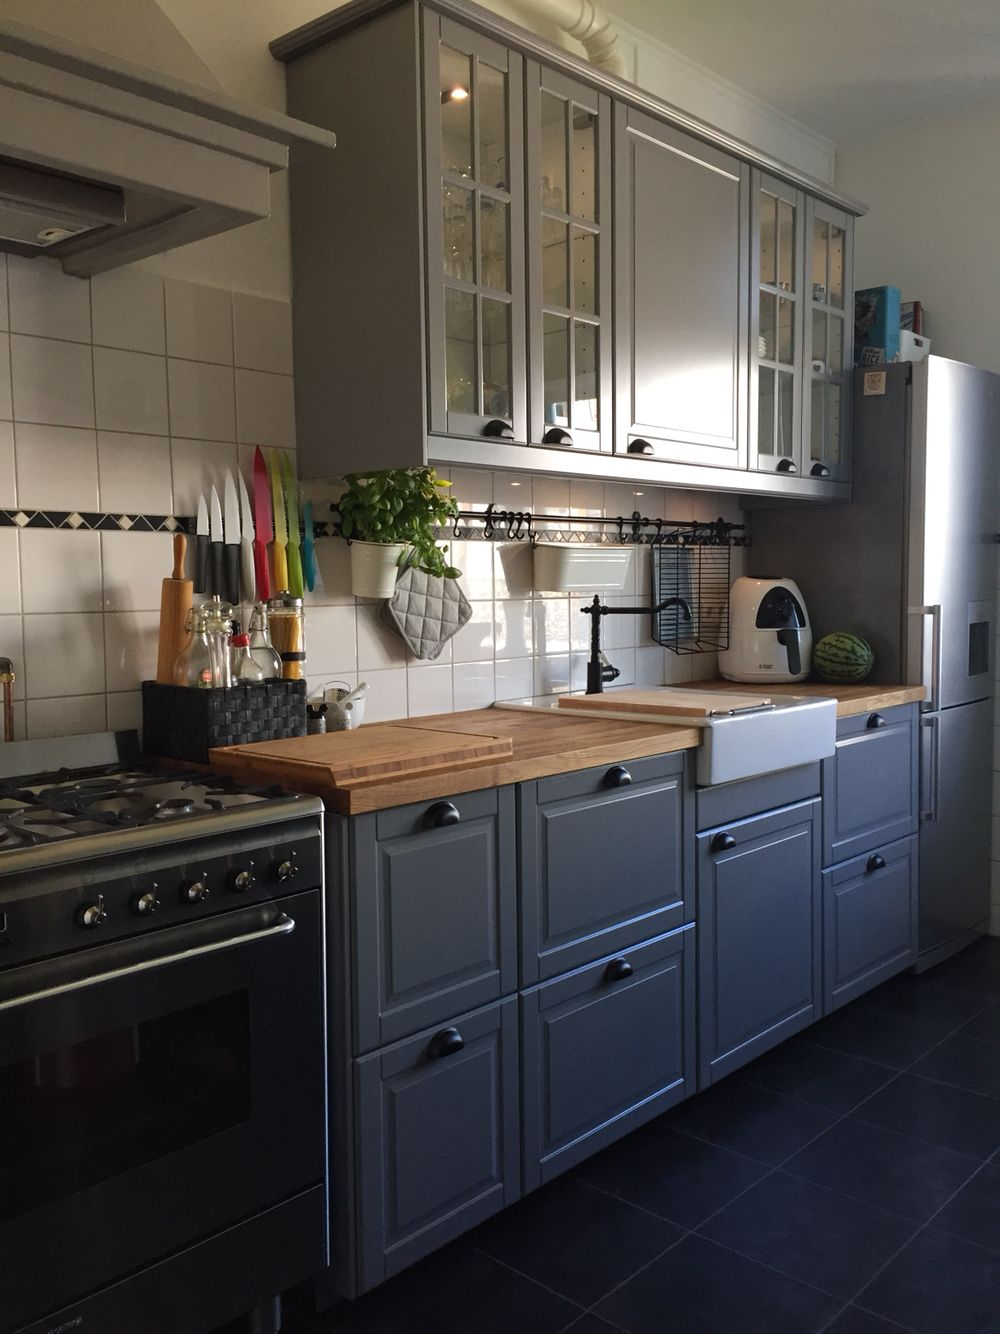 New kitchen ikea bodbyn grey ikea bodbyn pinterest for Kitchen cabinets ikea